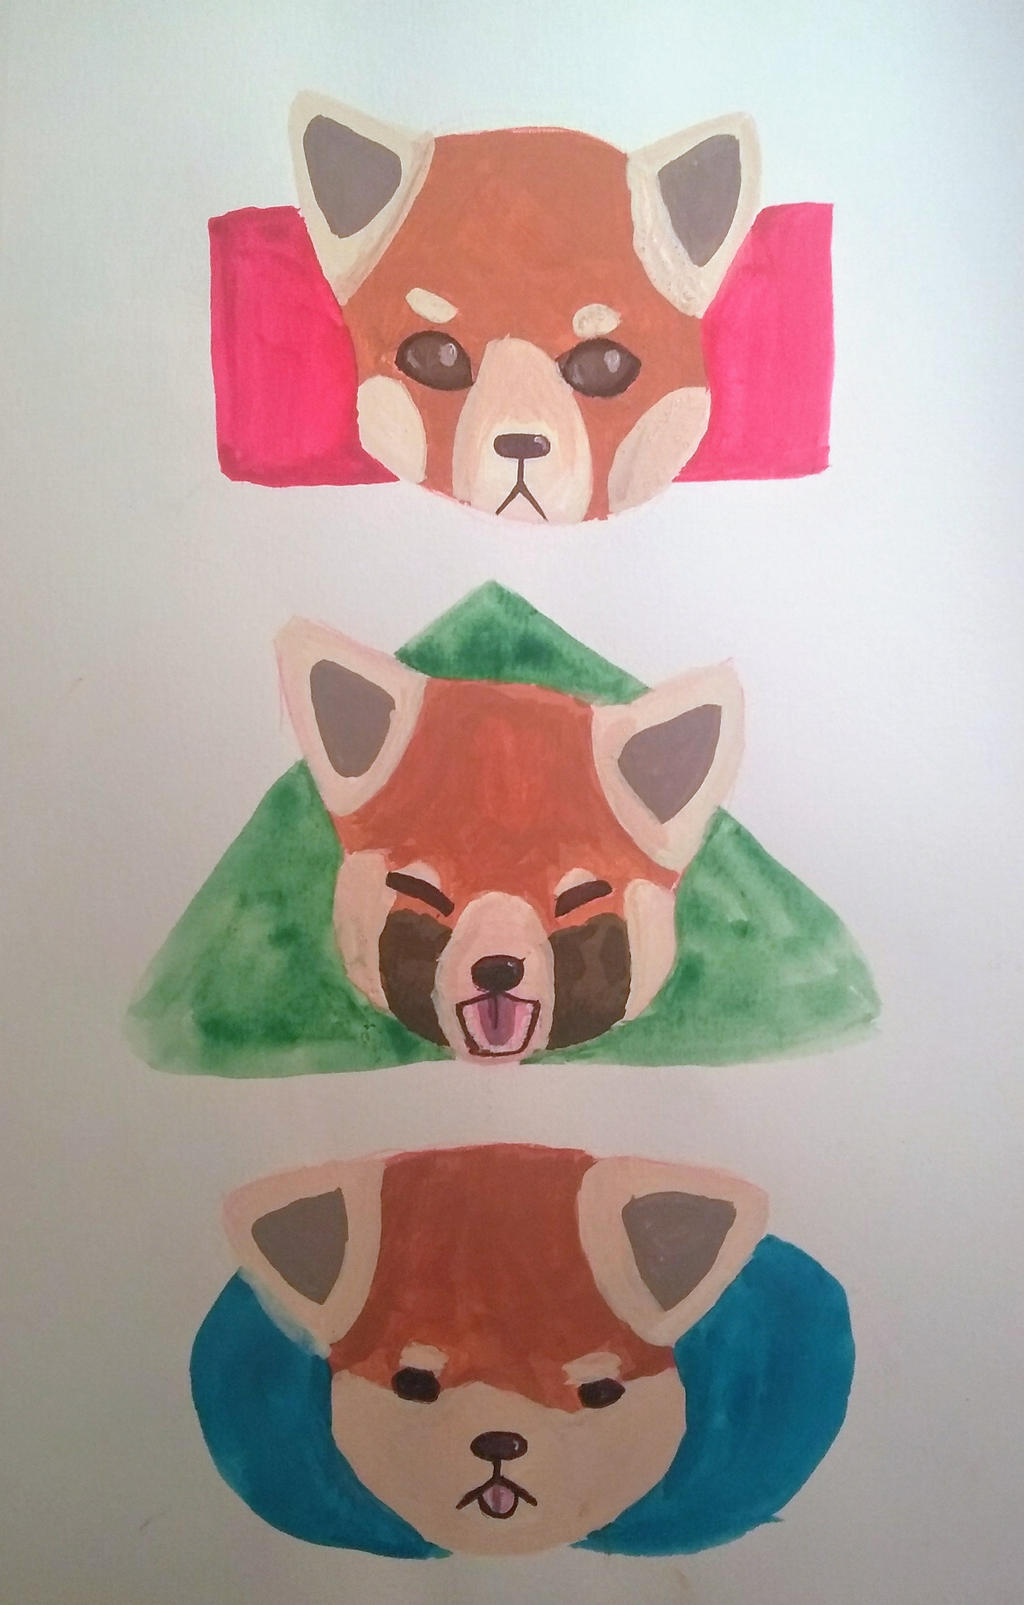 red pandas by Freezeash